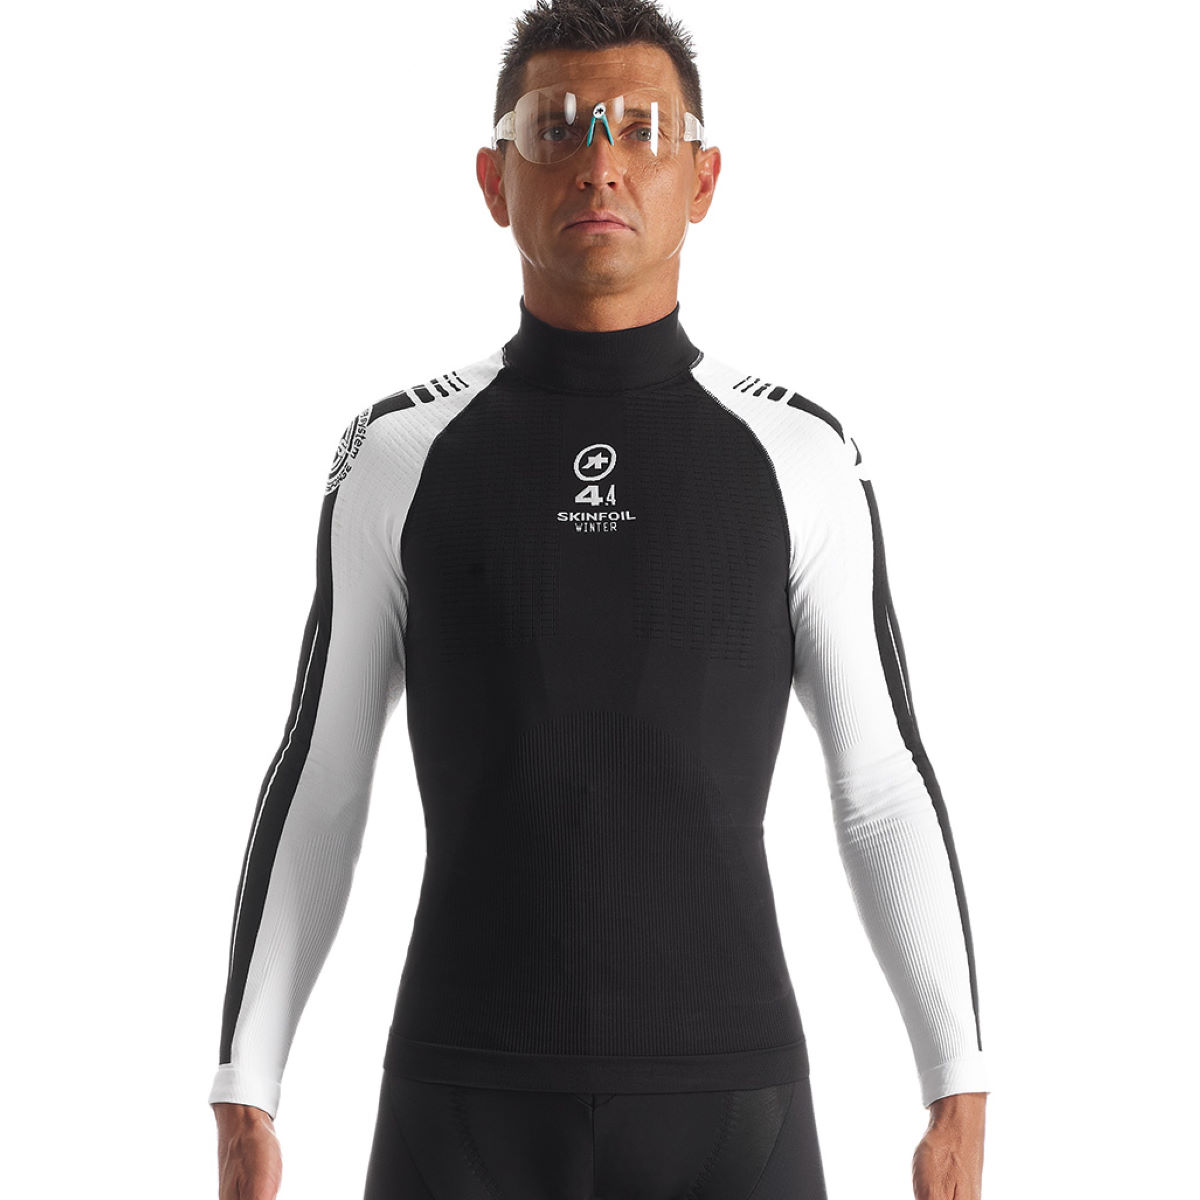 Assos ls skinfoilwinter evo7 base layer base layers blok black aw15 p13 40 419 15 0